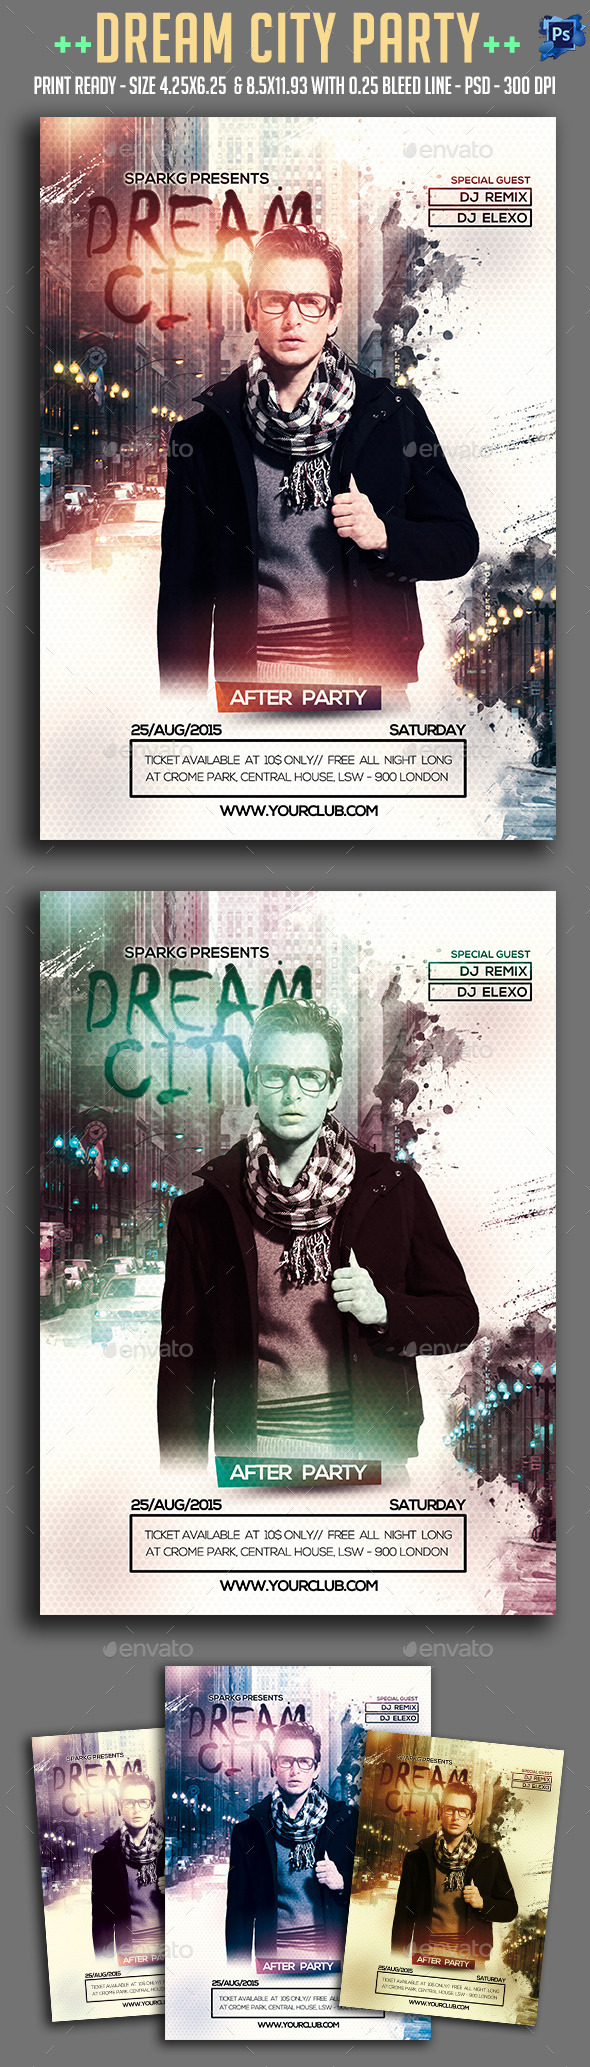 Dream City Party Flyer